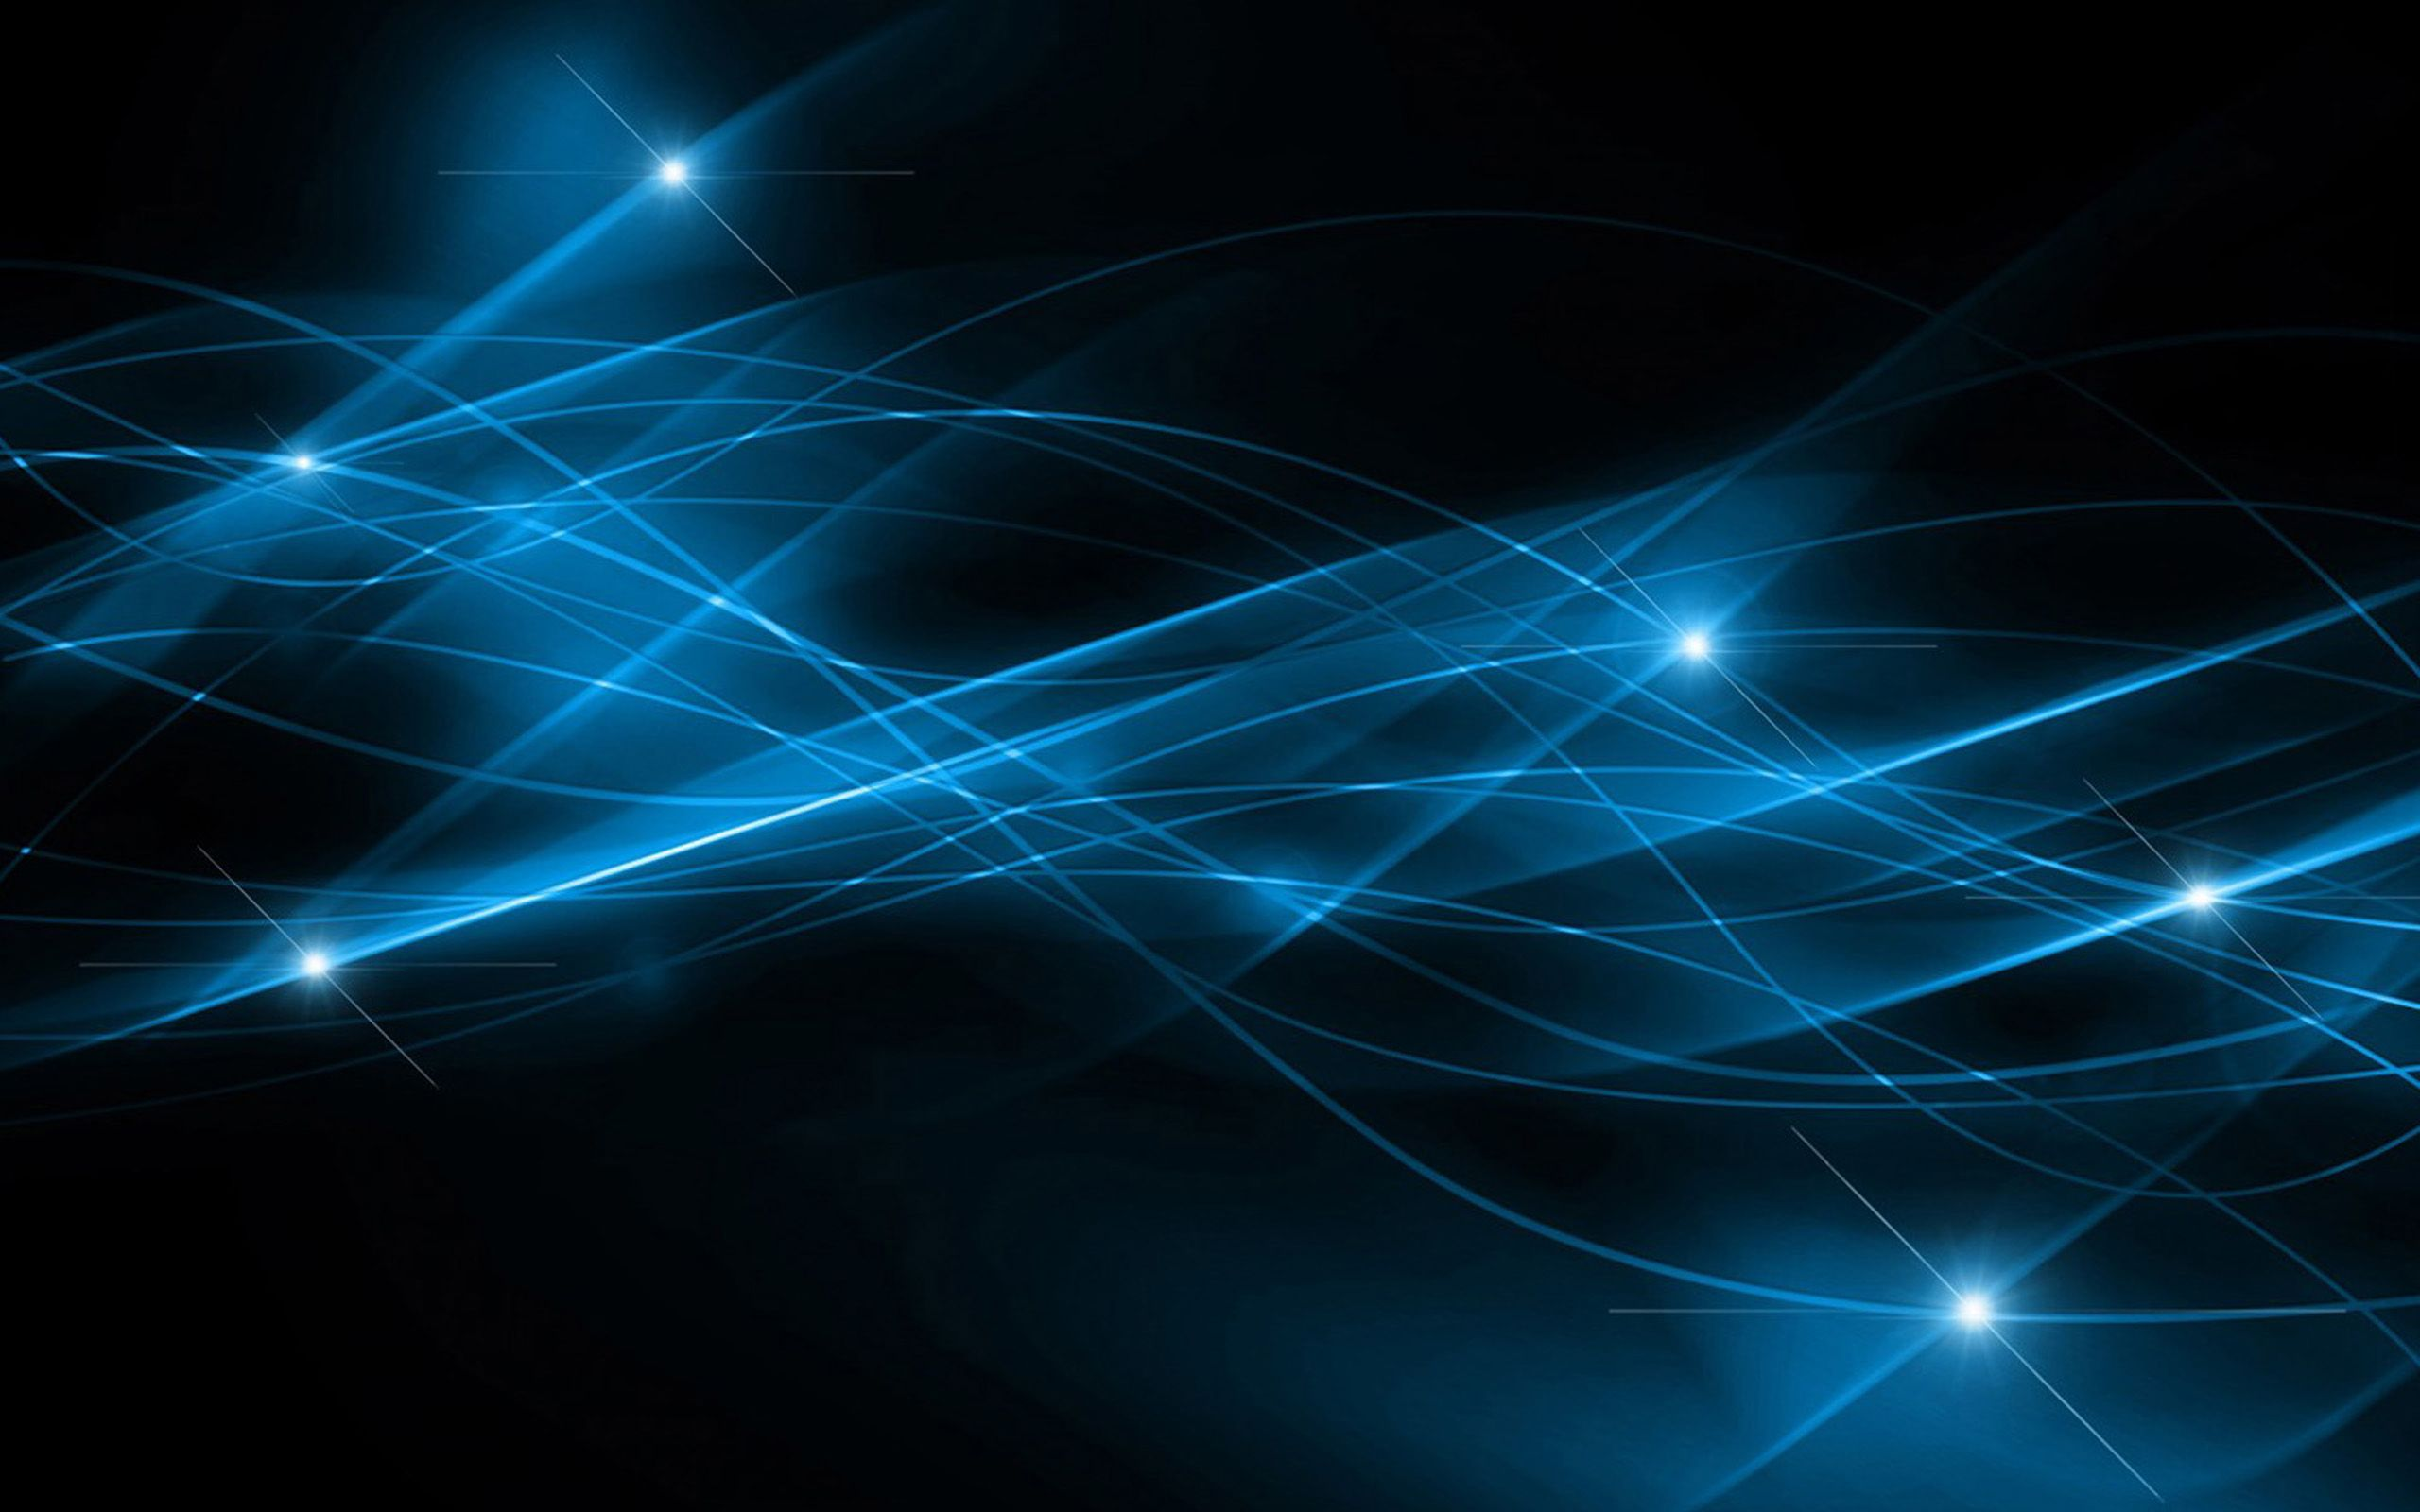 Pc Abstract Blue Wallpapers, Calista Bank - Background Wallpaper Blue Lines Abstract - HD Wallpaper